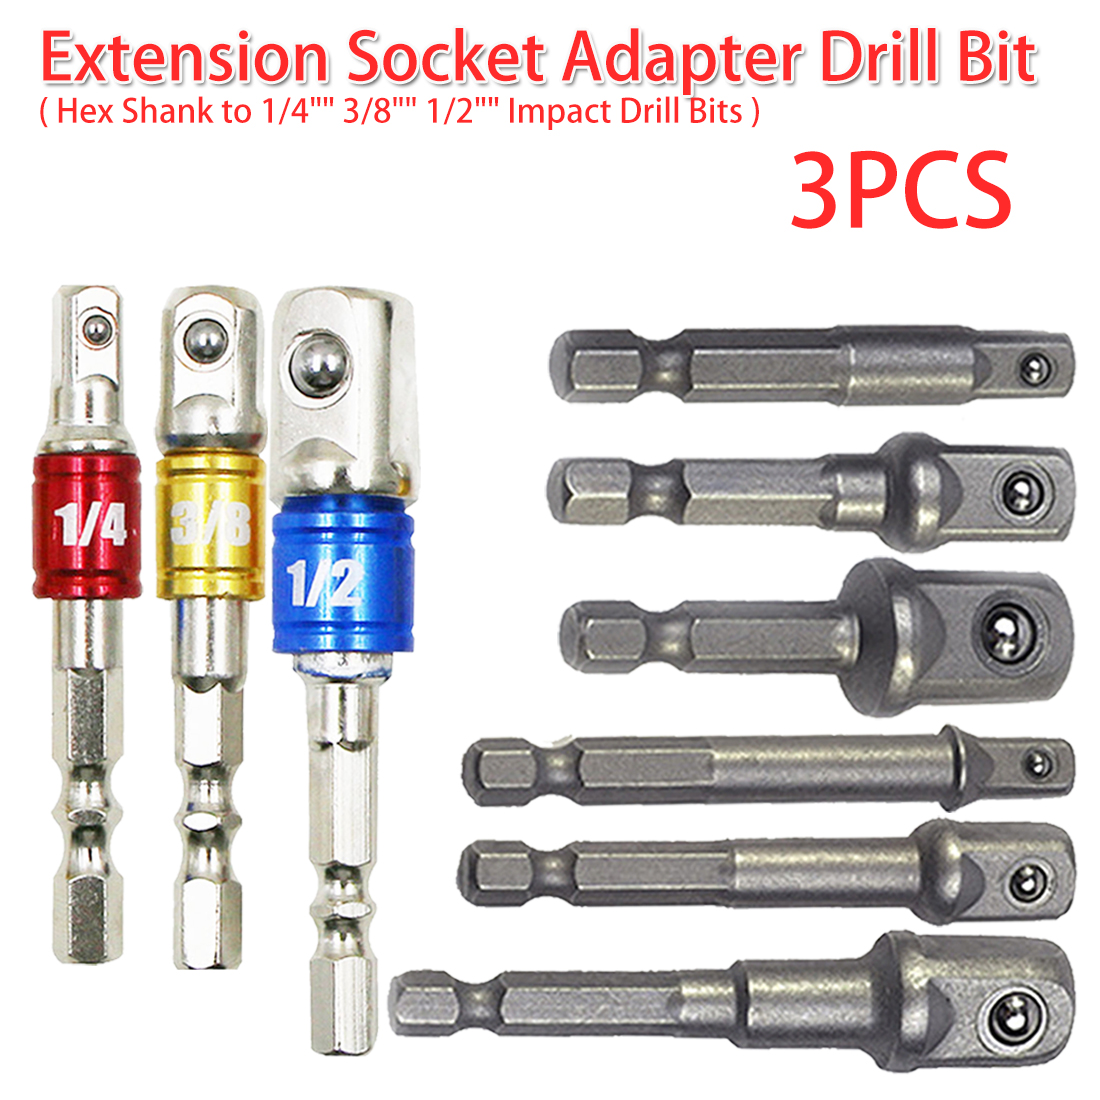 "Drill Socket Adapter 3pcs For Impact Driver With Hex Shank To Square Socket Drill Bit Bar Extension Set 1/4"" 3/8"" 1/2"" 50mm-72mm"